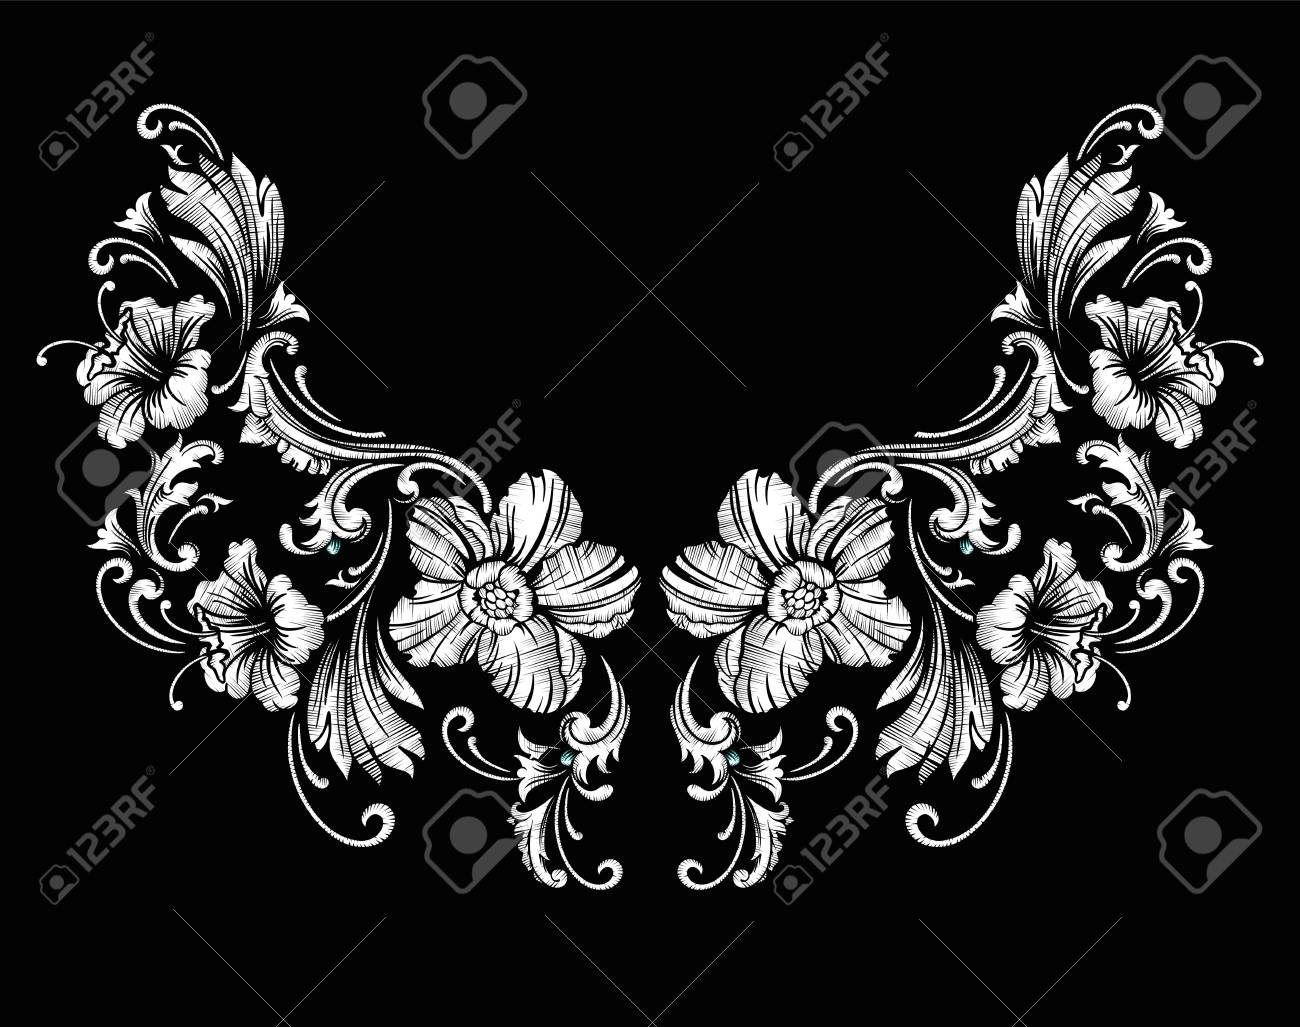 Floral Neck Embroidery Design In Baroque Style. Royalty Free ...